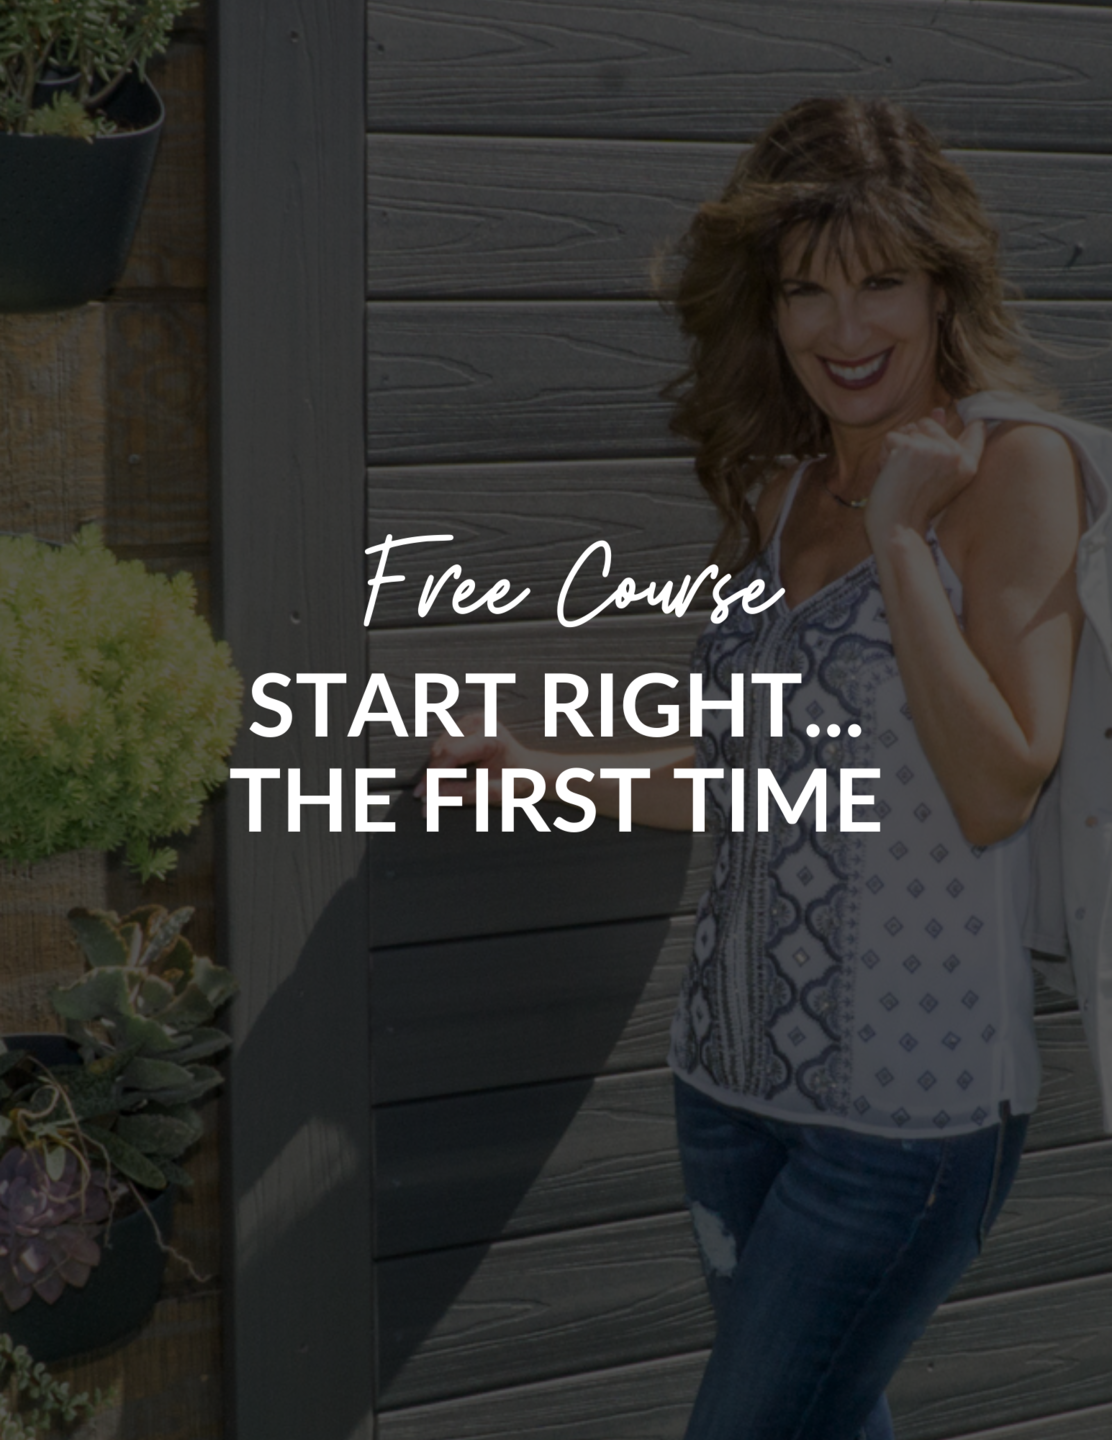 Free Consulting Training